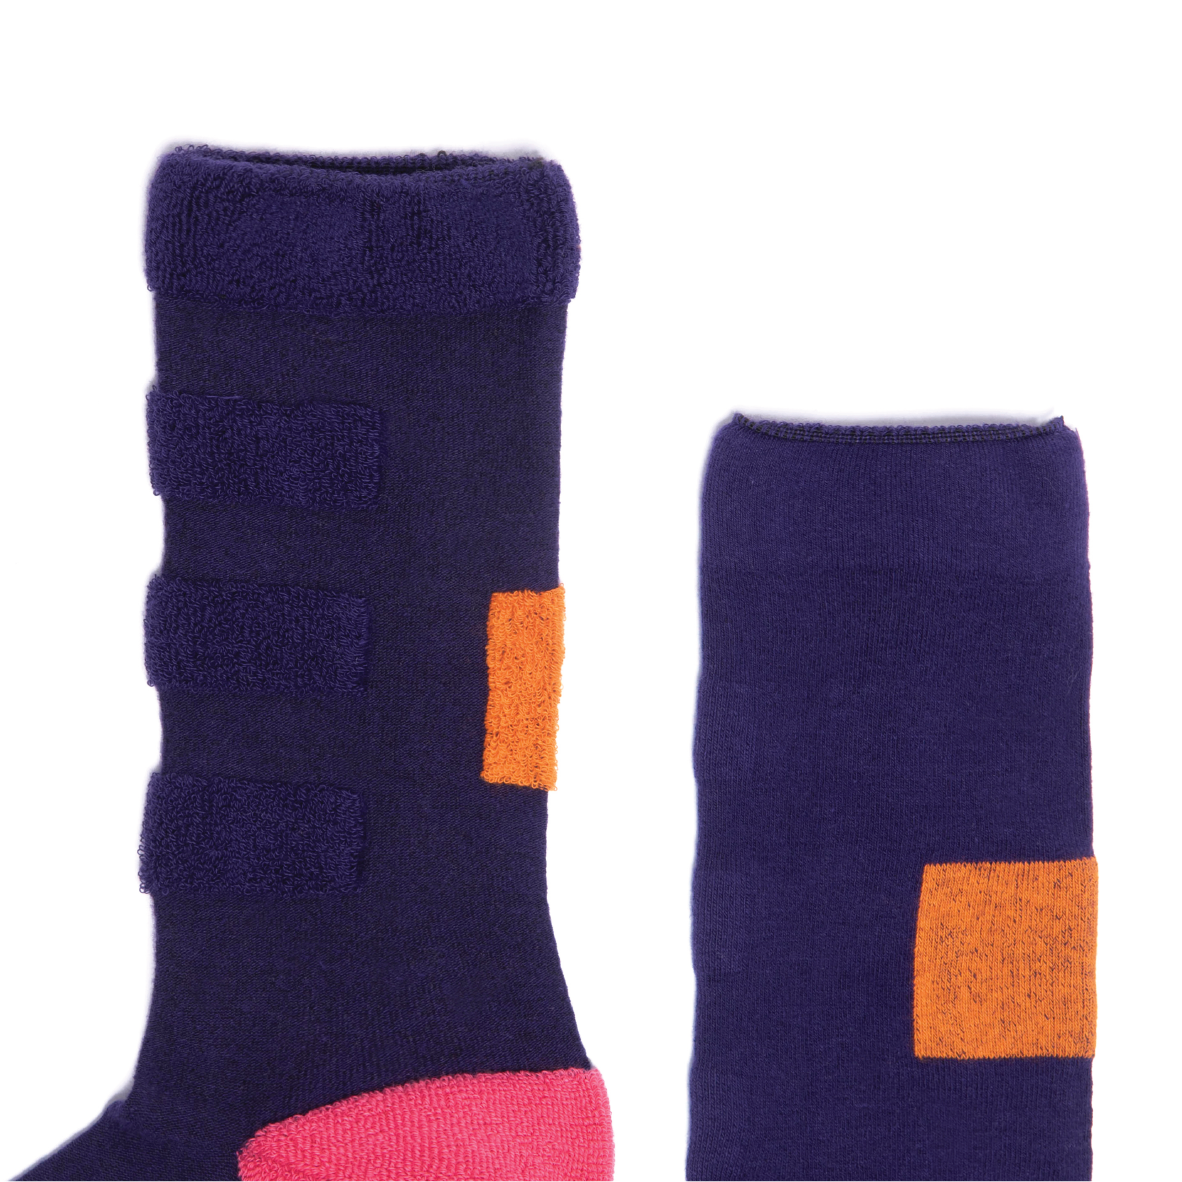 My Inner Beauty - Minda Purple Pennant Socks